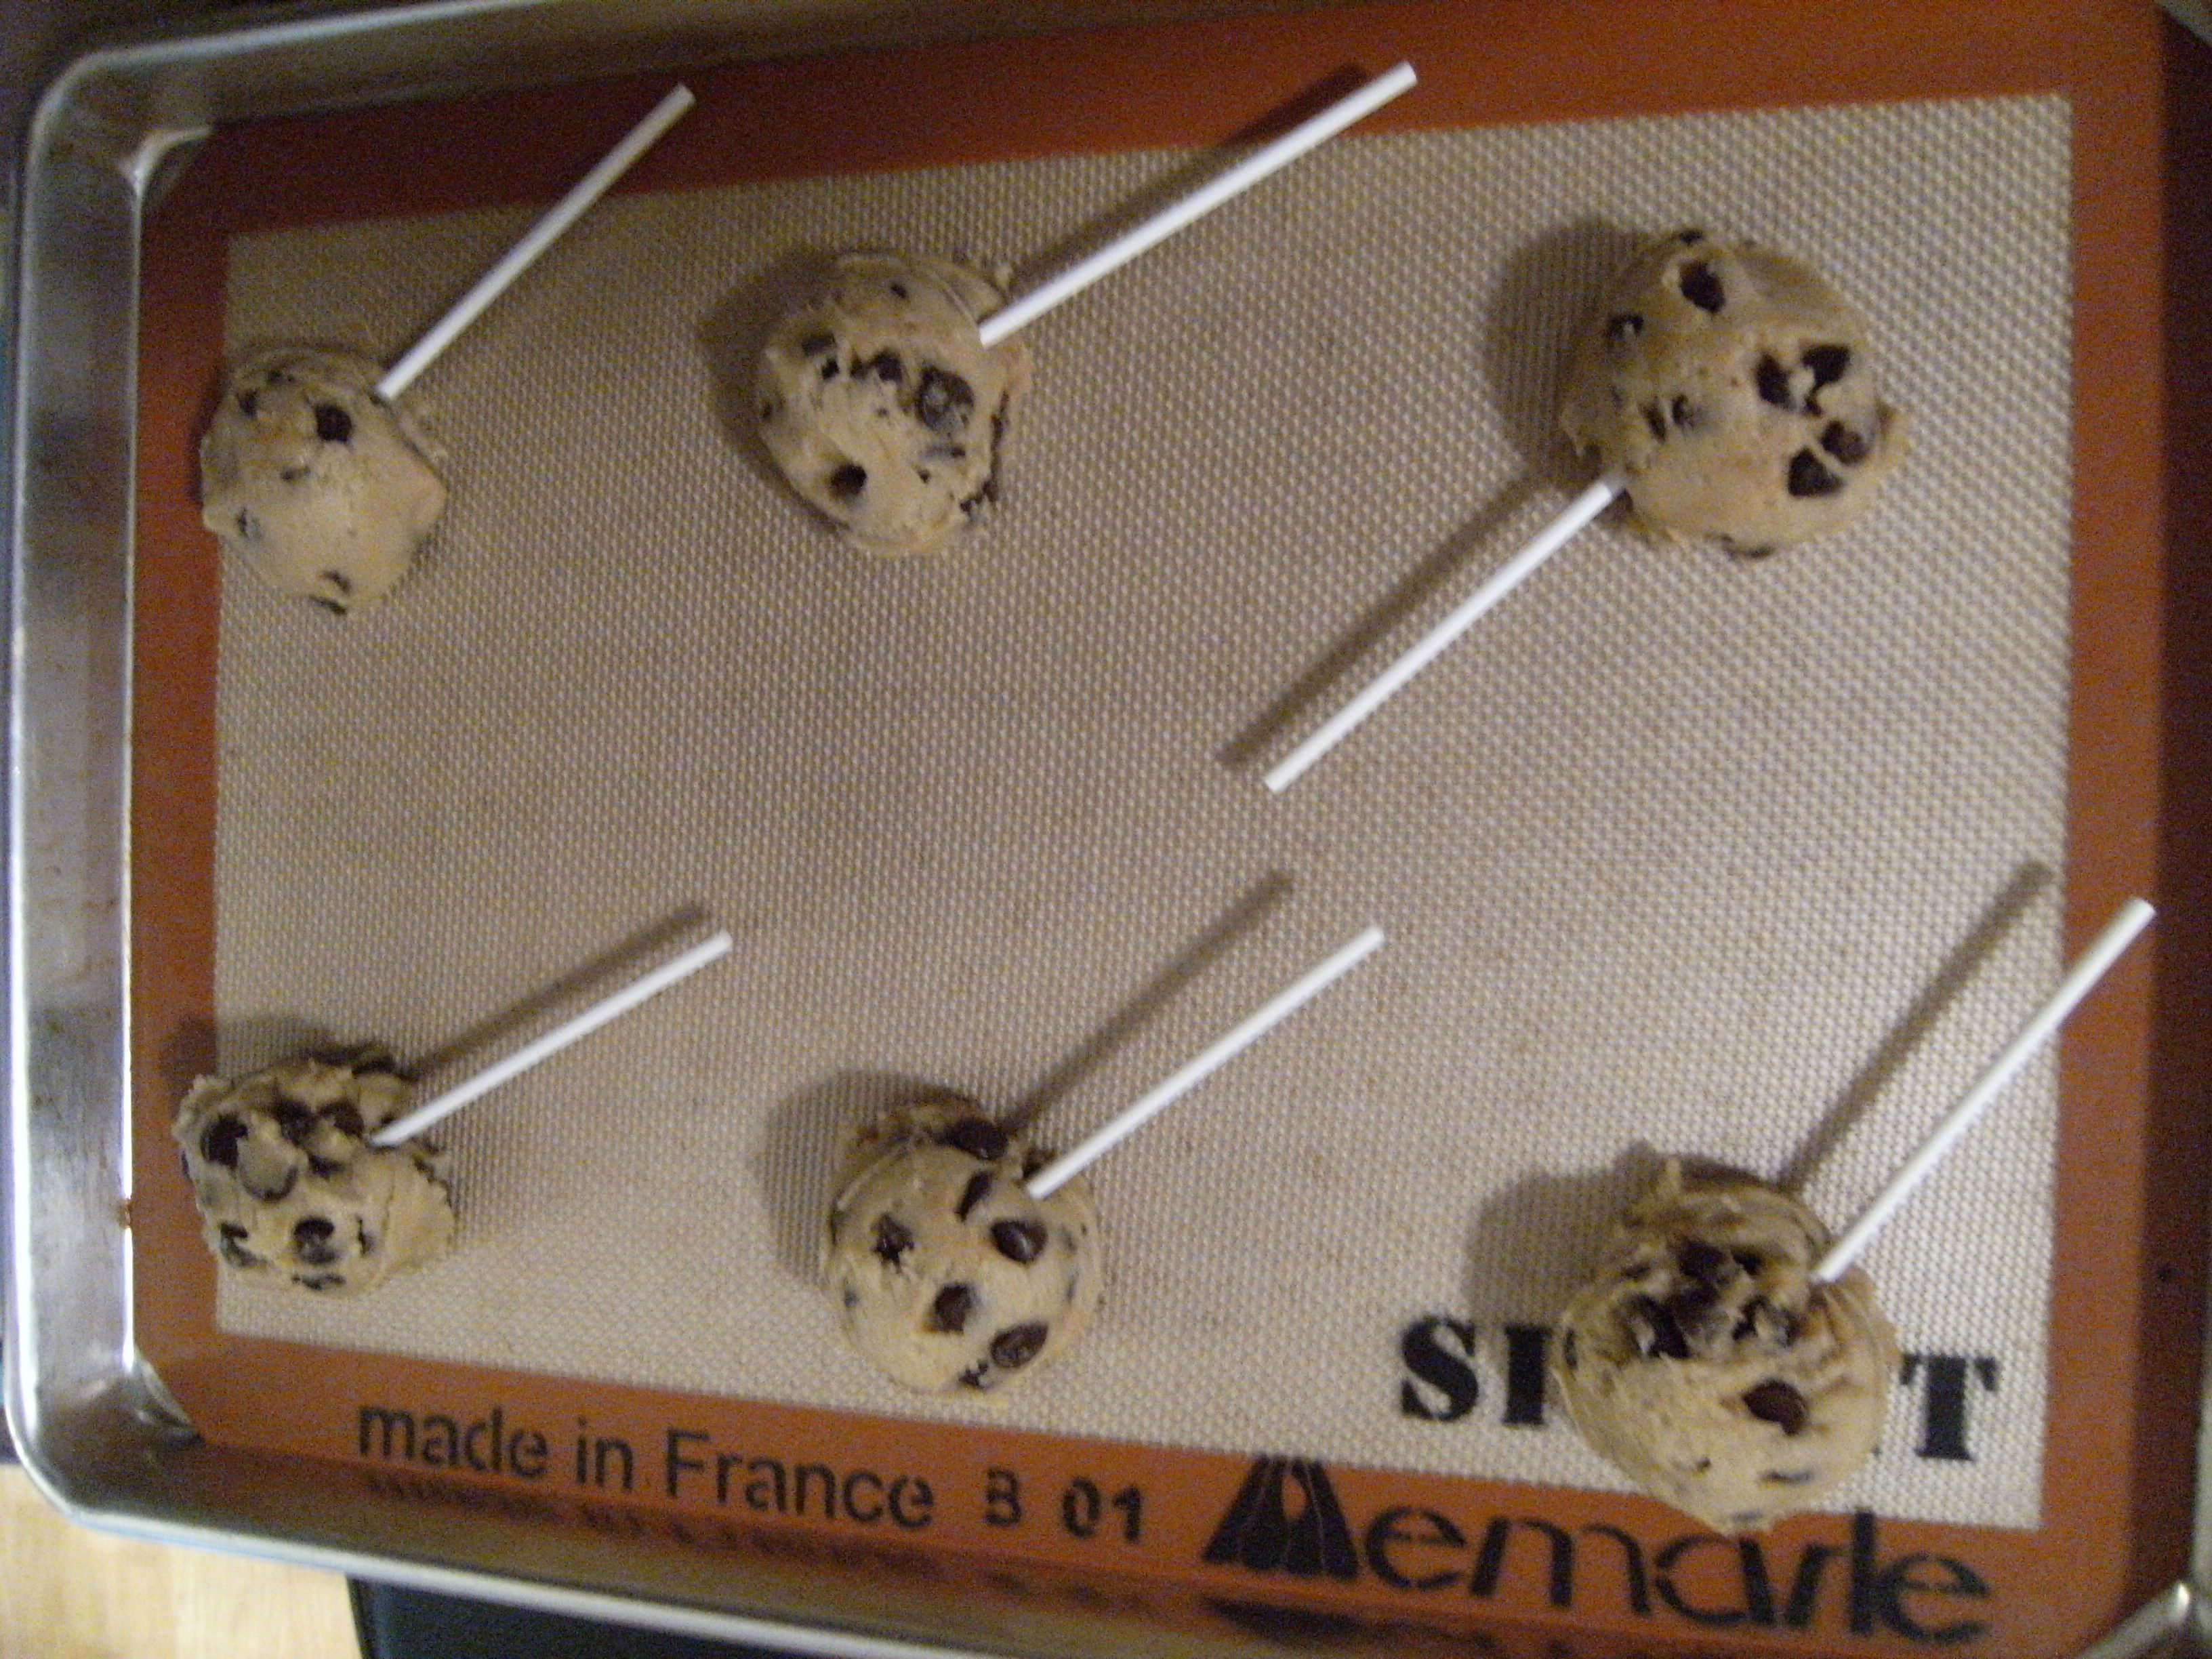 Place lollipop sticks into raw chocolate chip cookie dough and bake them into cookie pops!